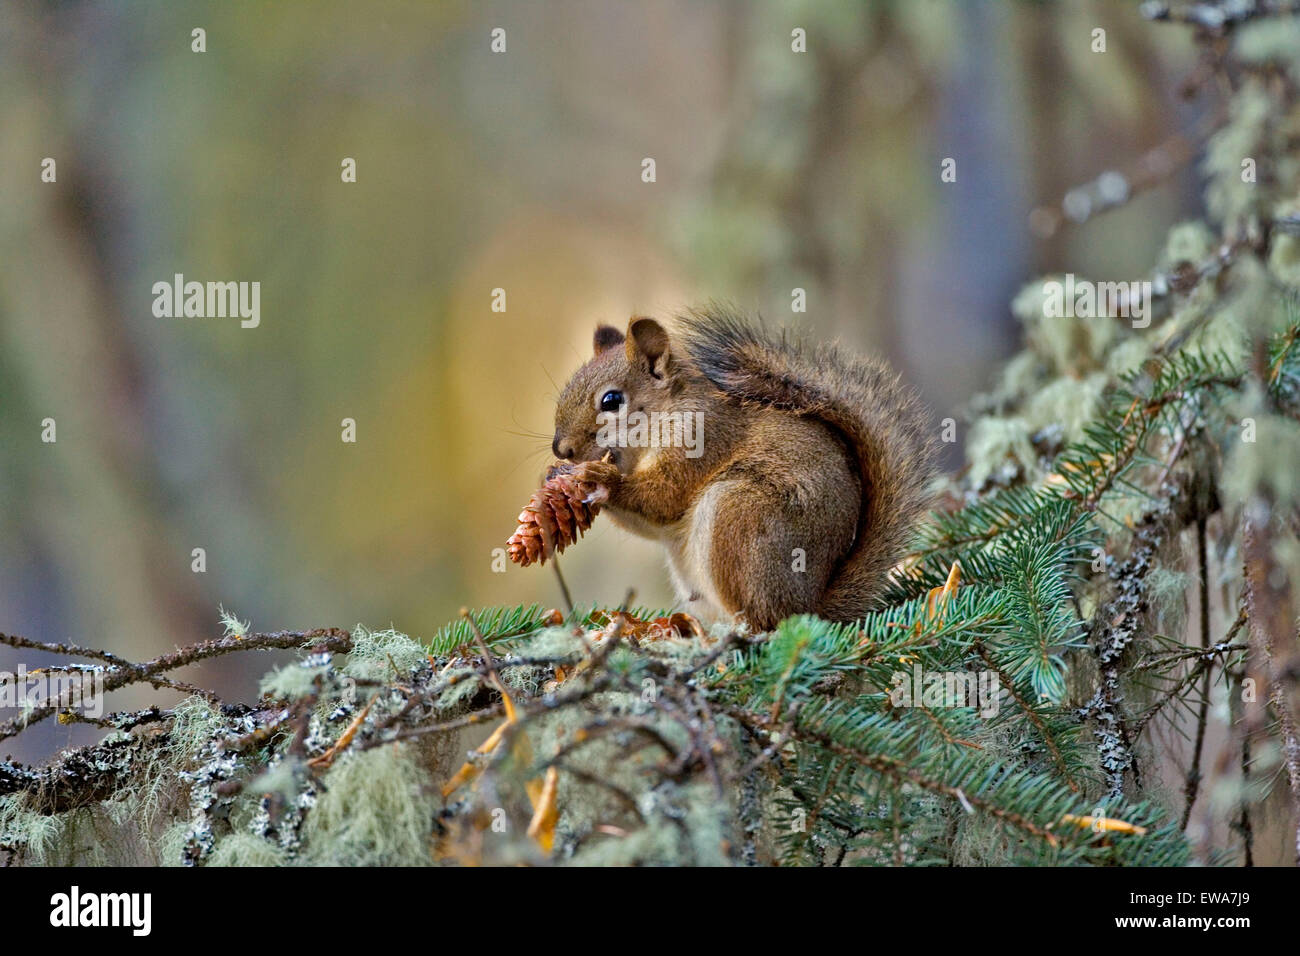 Red Squirrel in tree, feeding on cone seeds - Stock Image